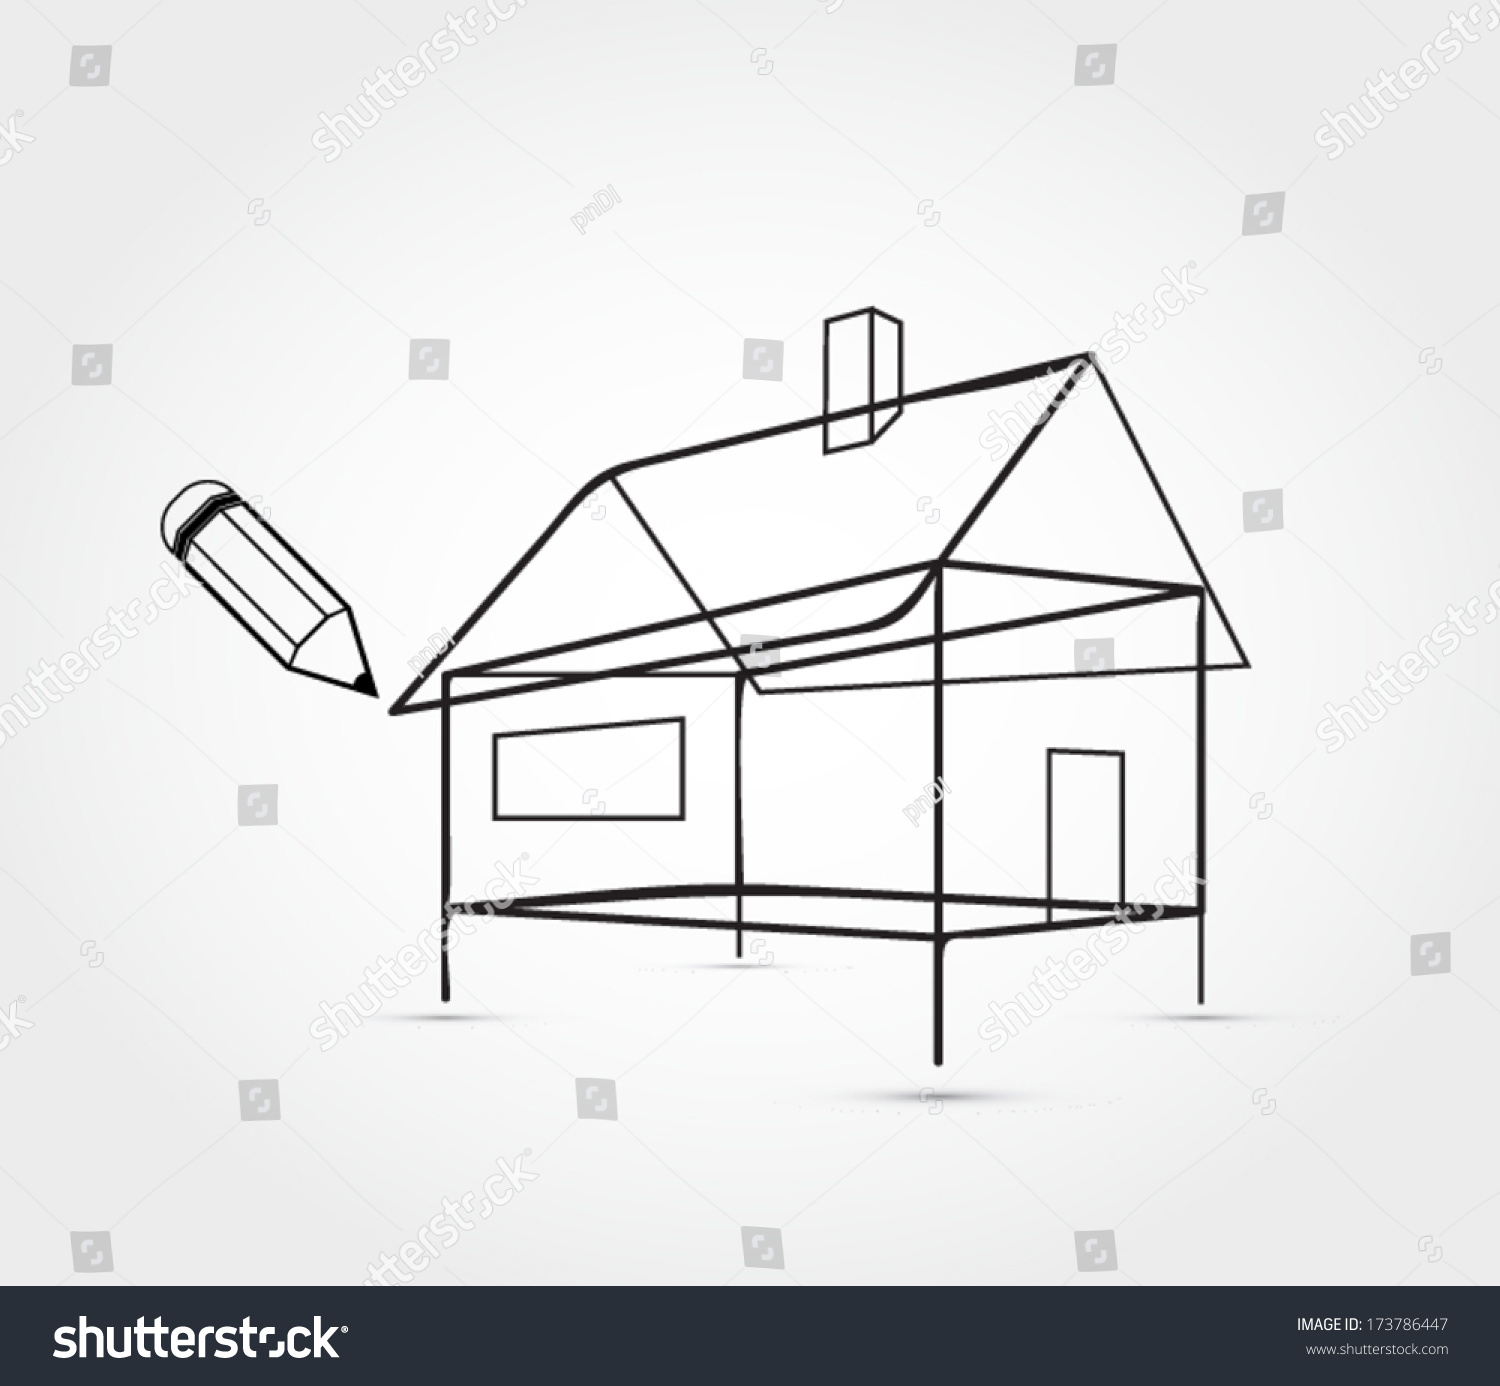 House outline picture - House Outline In Perspective